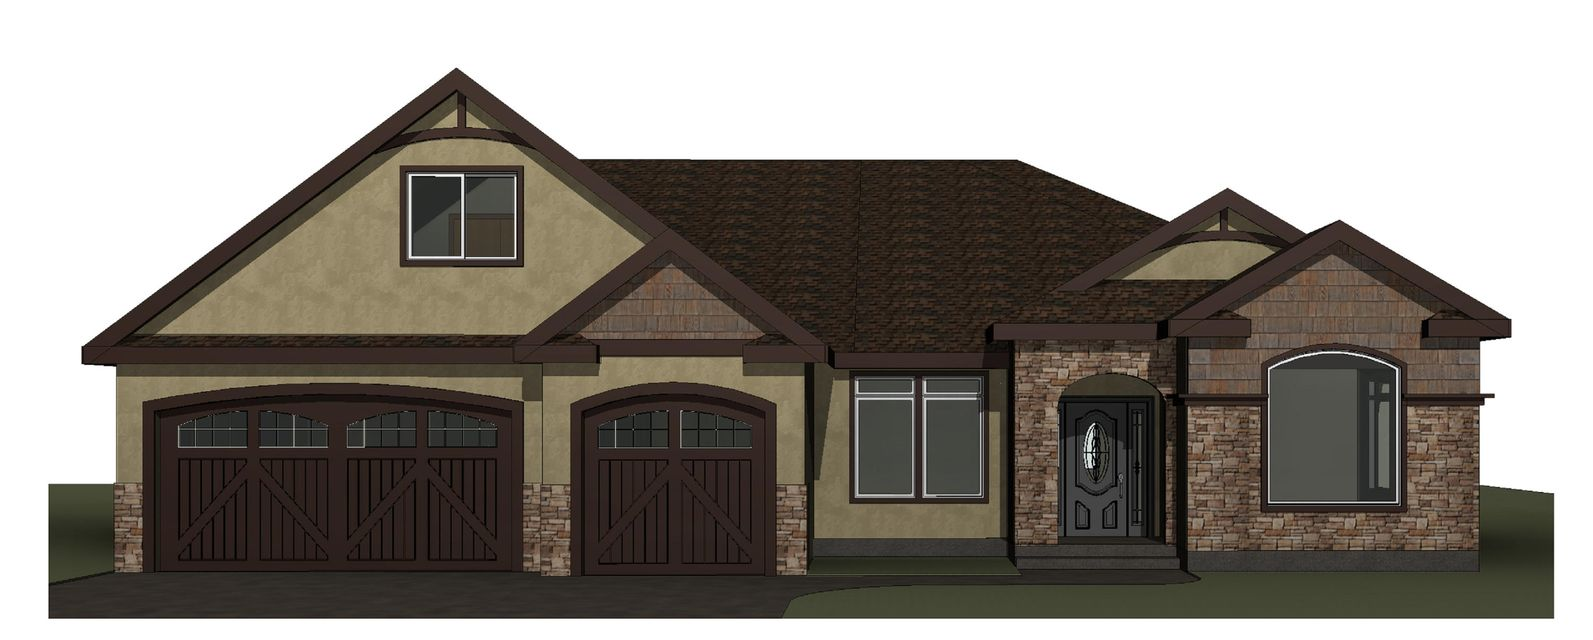 Absolutely phenomenal new construction at the Highlands Golf Course neighborhood.  3 bedroom 3 bath home includes an office, an incredible gourmet kitchen, lavishly appointed master suite and more.  This builder's attention to detail and sense of craftsmanship will mesmerize even the most discerning new homeowner.